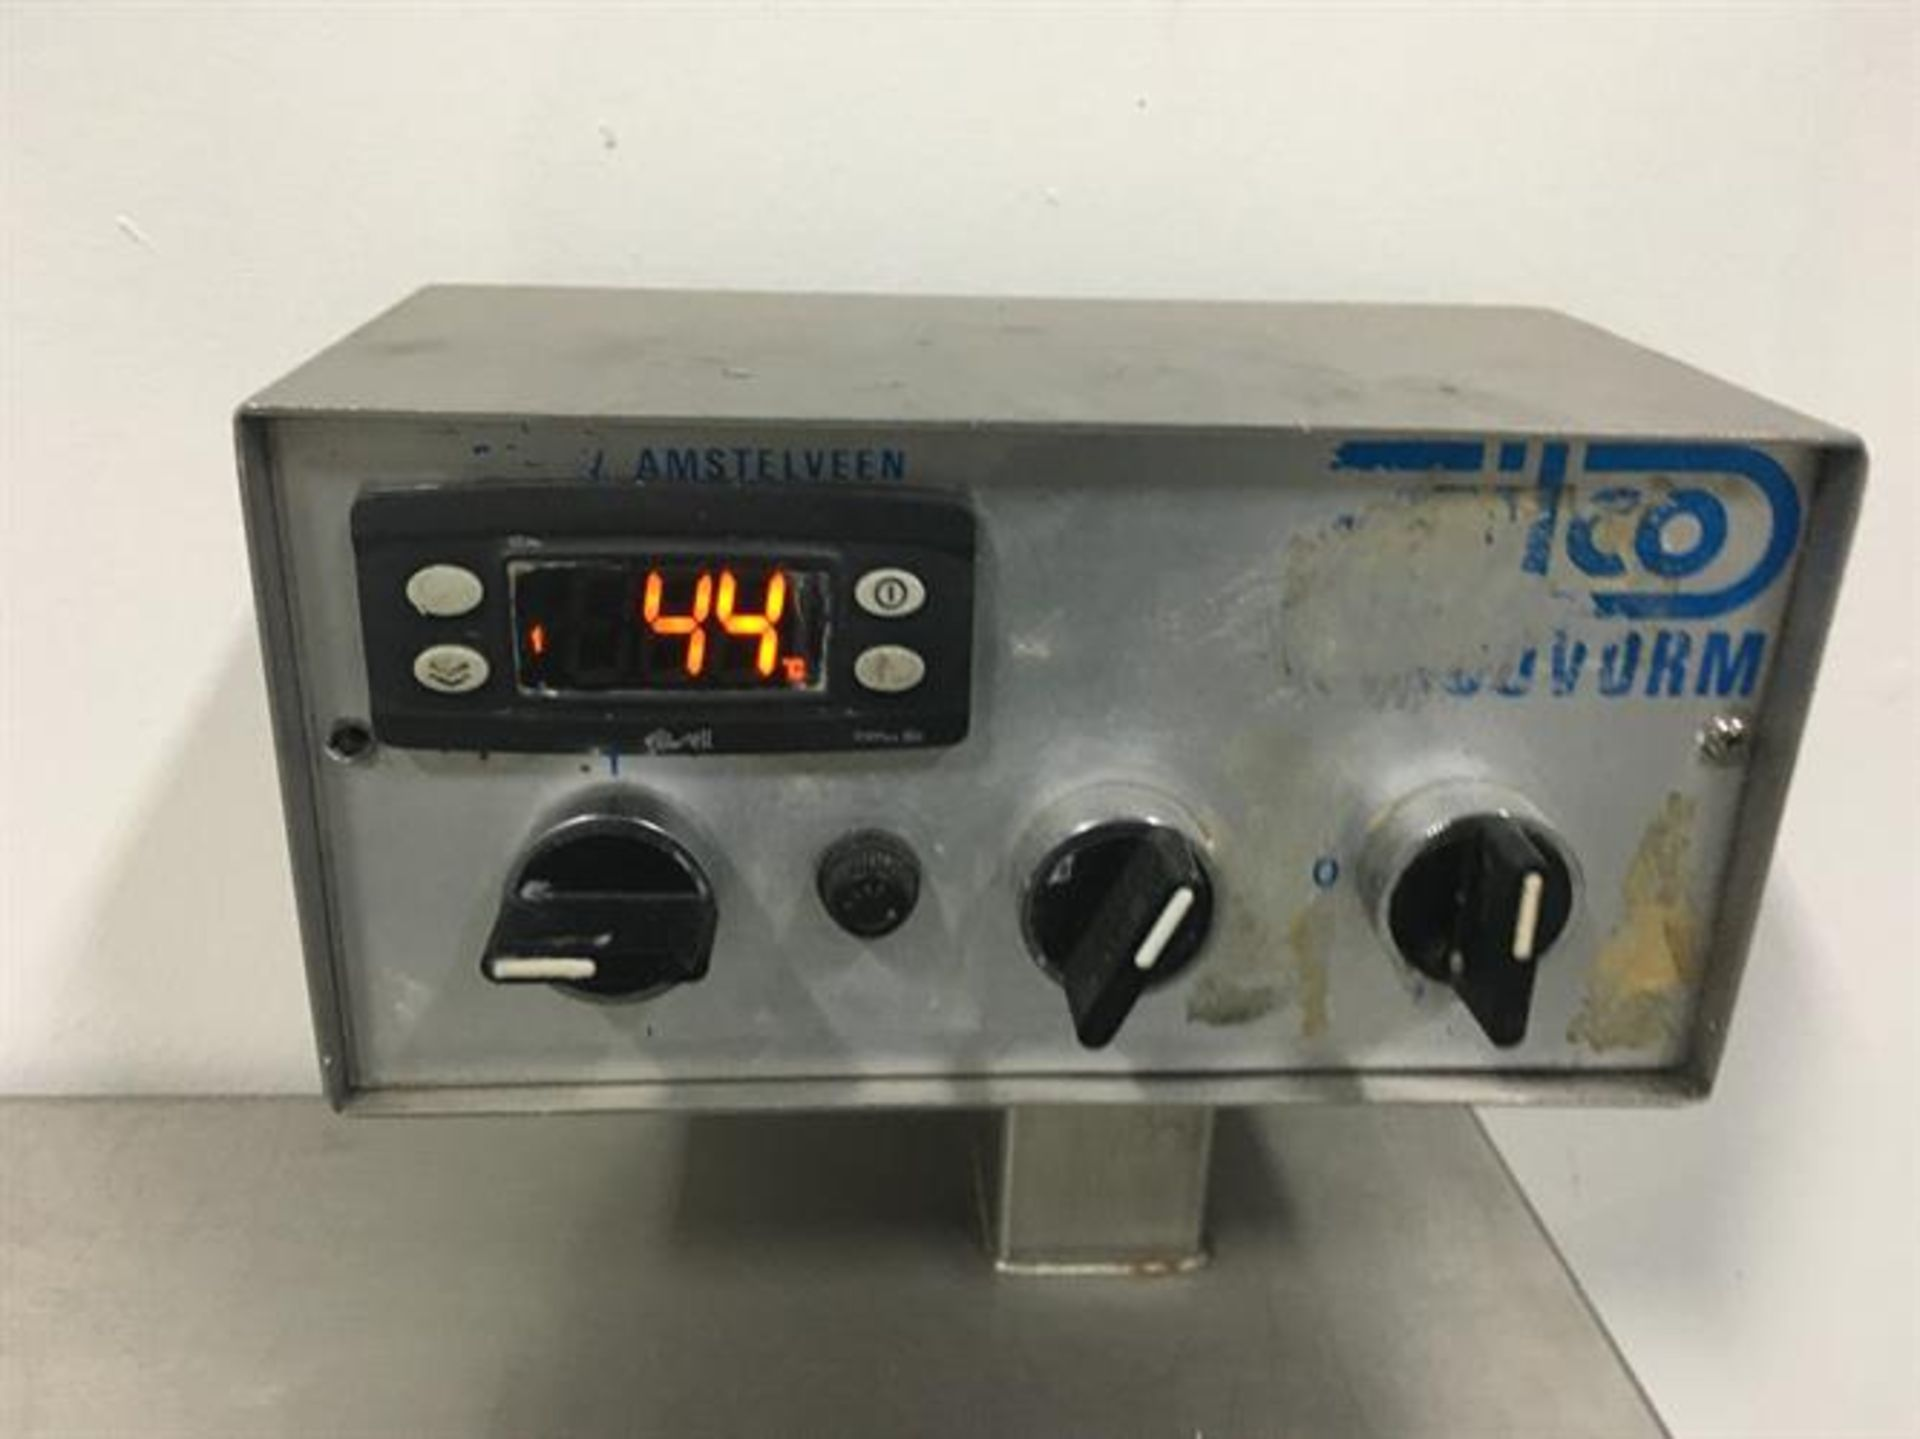 Chocoma 40-kg Tempering Melter - Wheel type - Electrically heated with digital thermostat - Tank - Image 3 of 5